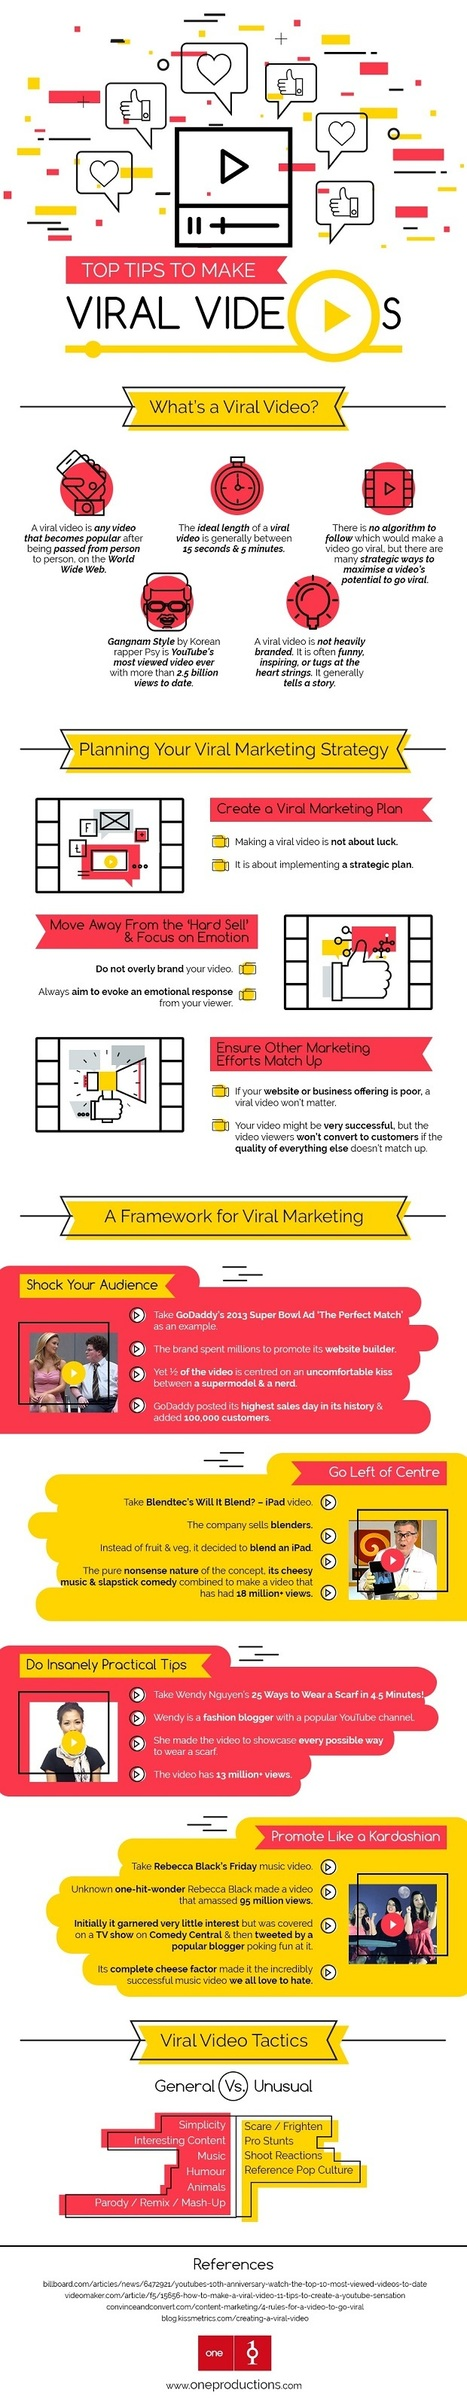 Top tips for making viral videos [INFOGRAPIC] | Netimperative - latest digital marketing news | Integrated Brand Communications | Scoop.it